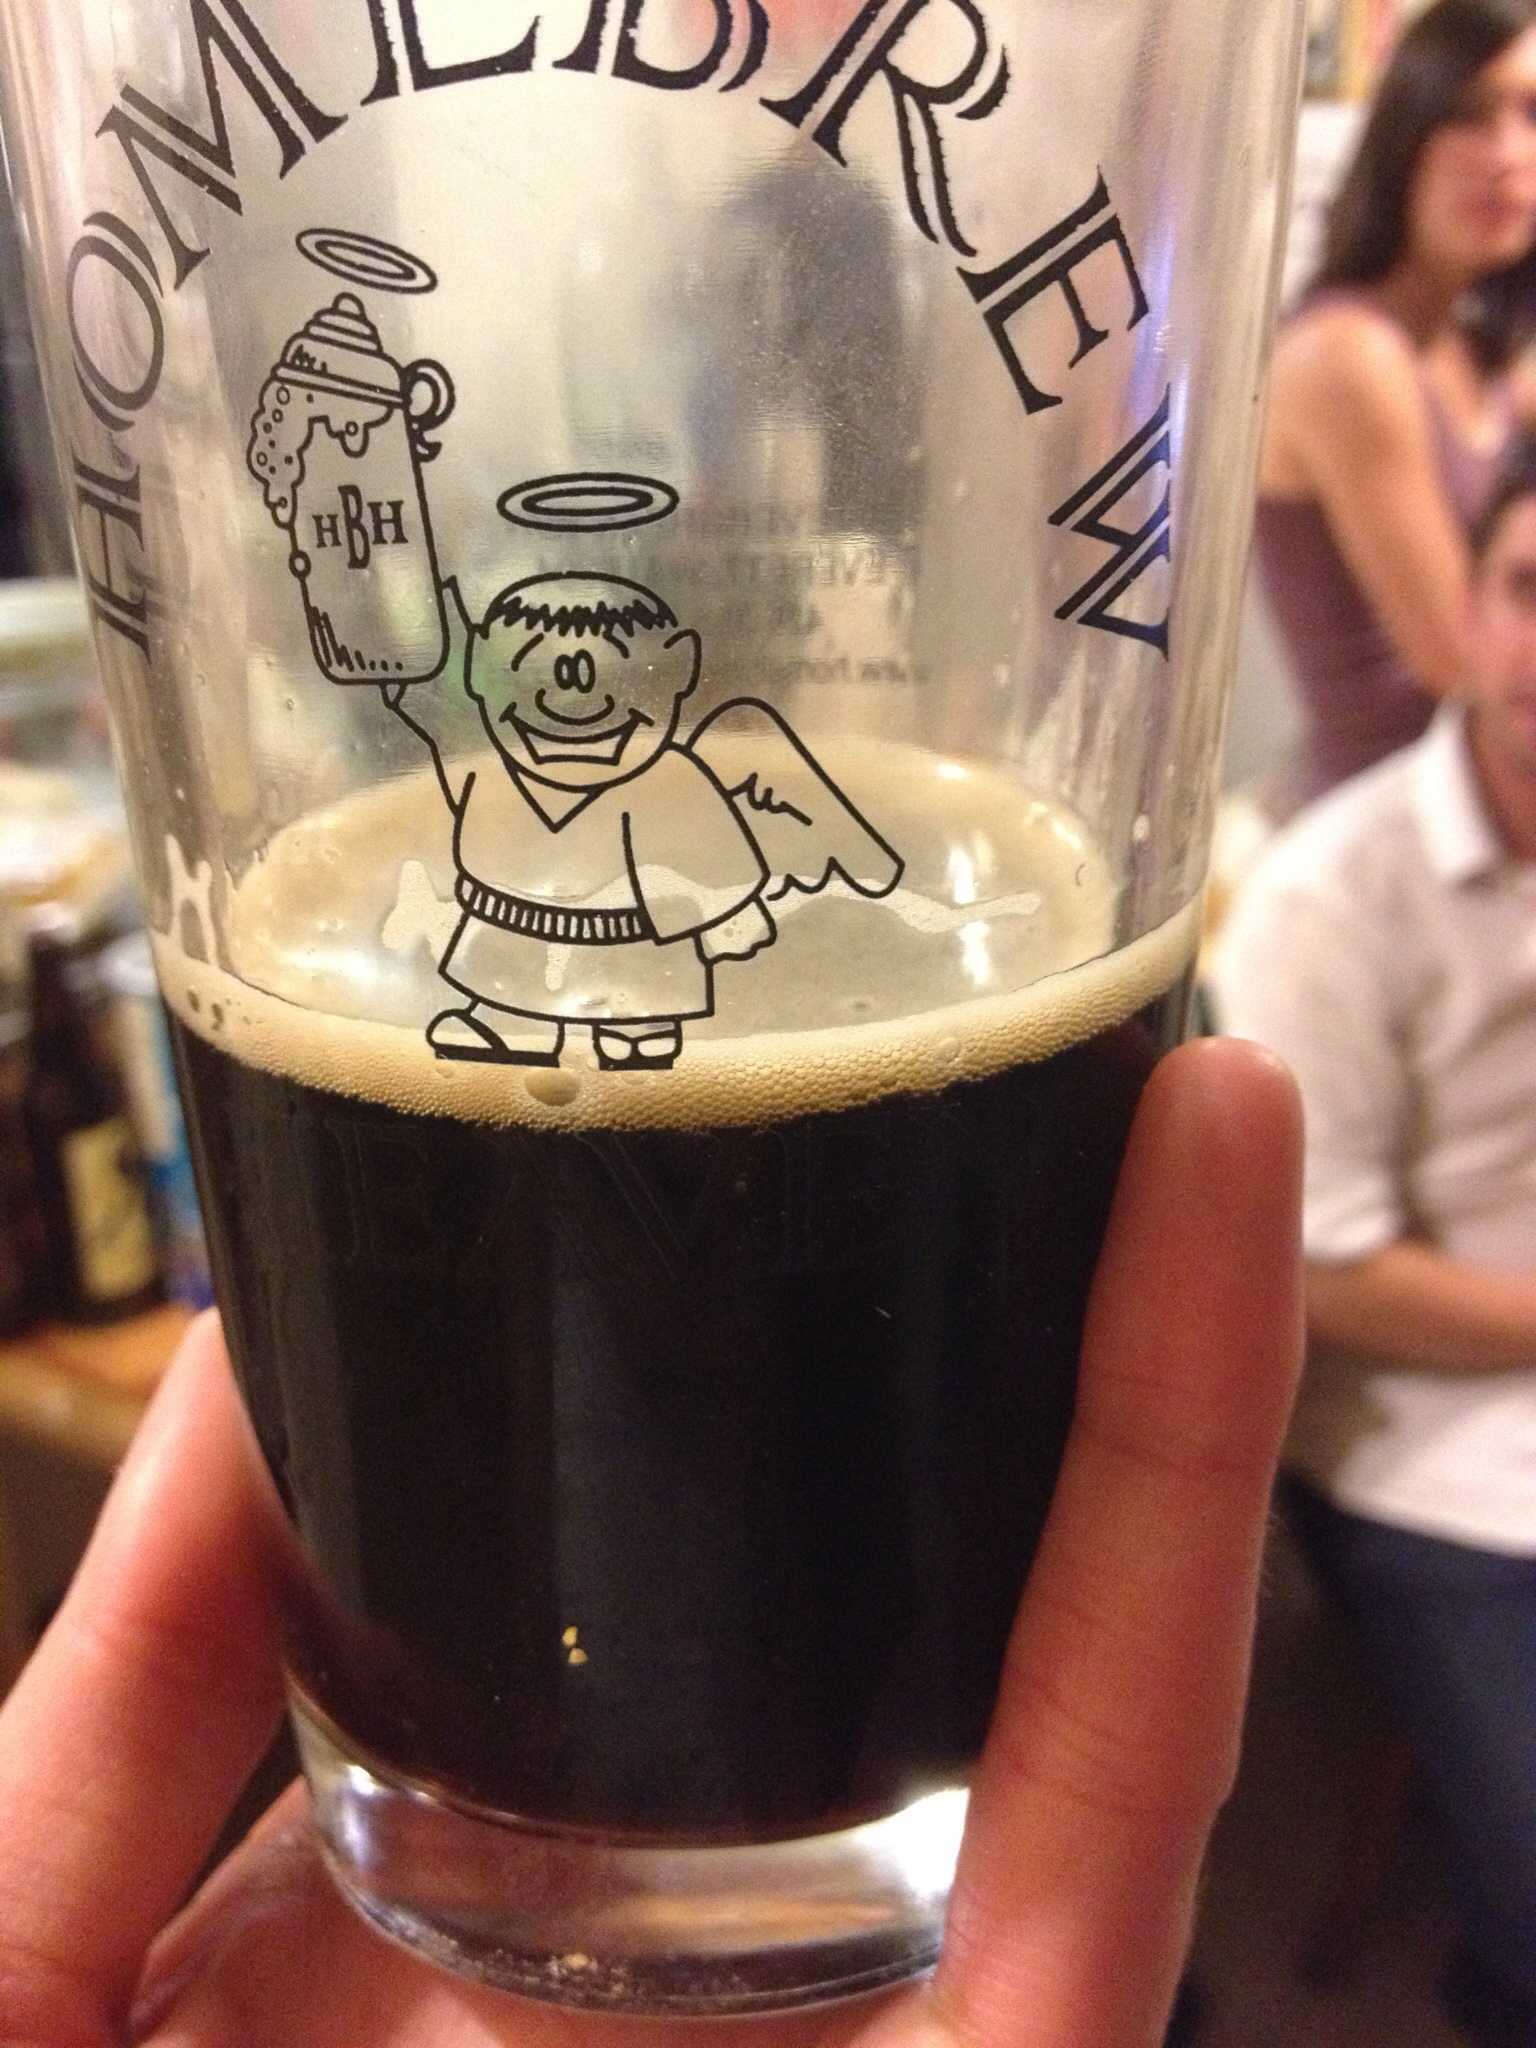 Robert's home brew, just one of his amazing stouts. The best stout I've ever had.